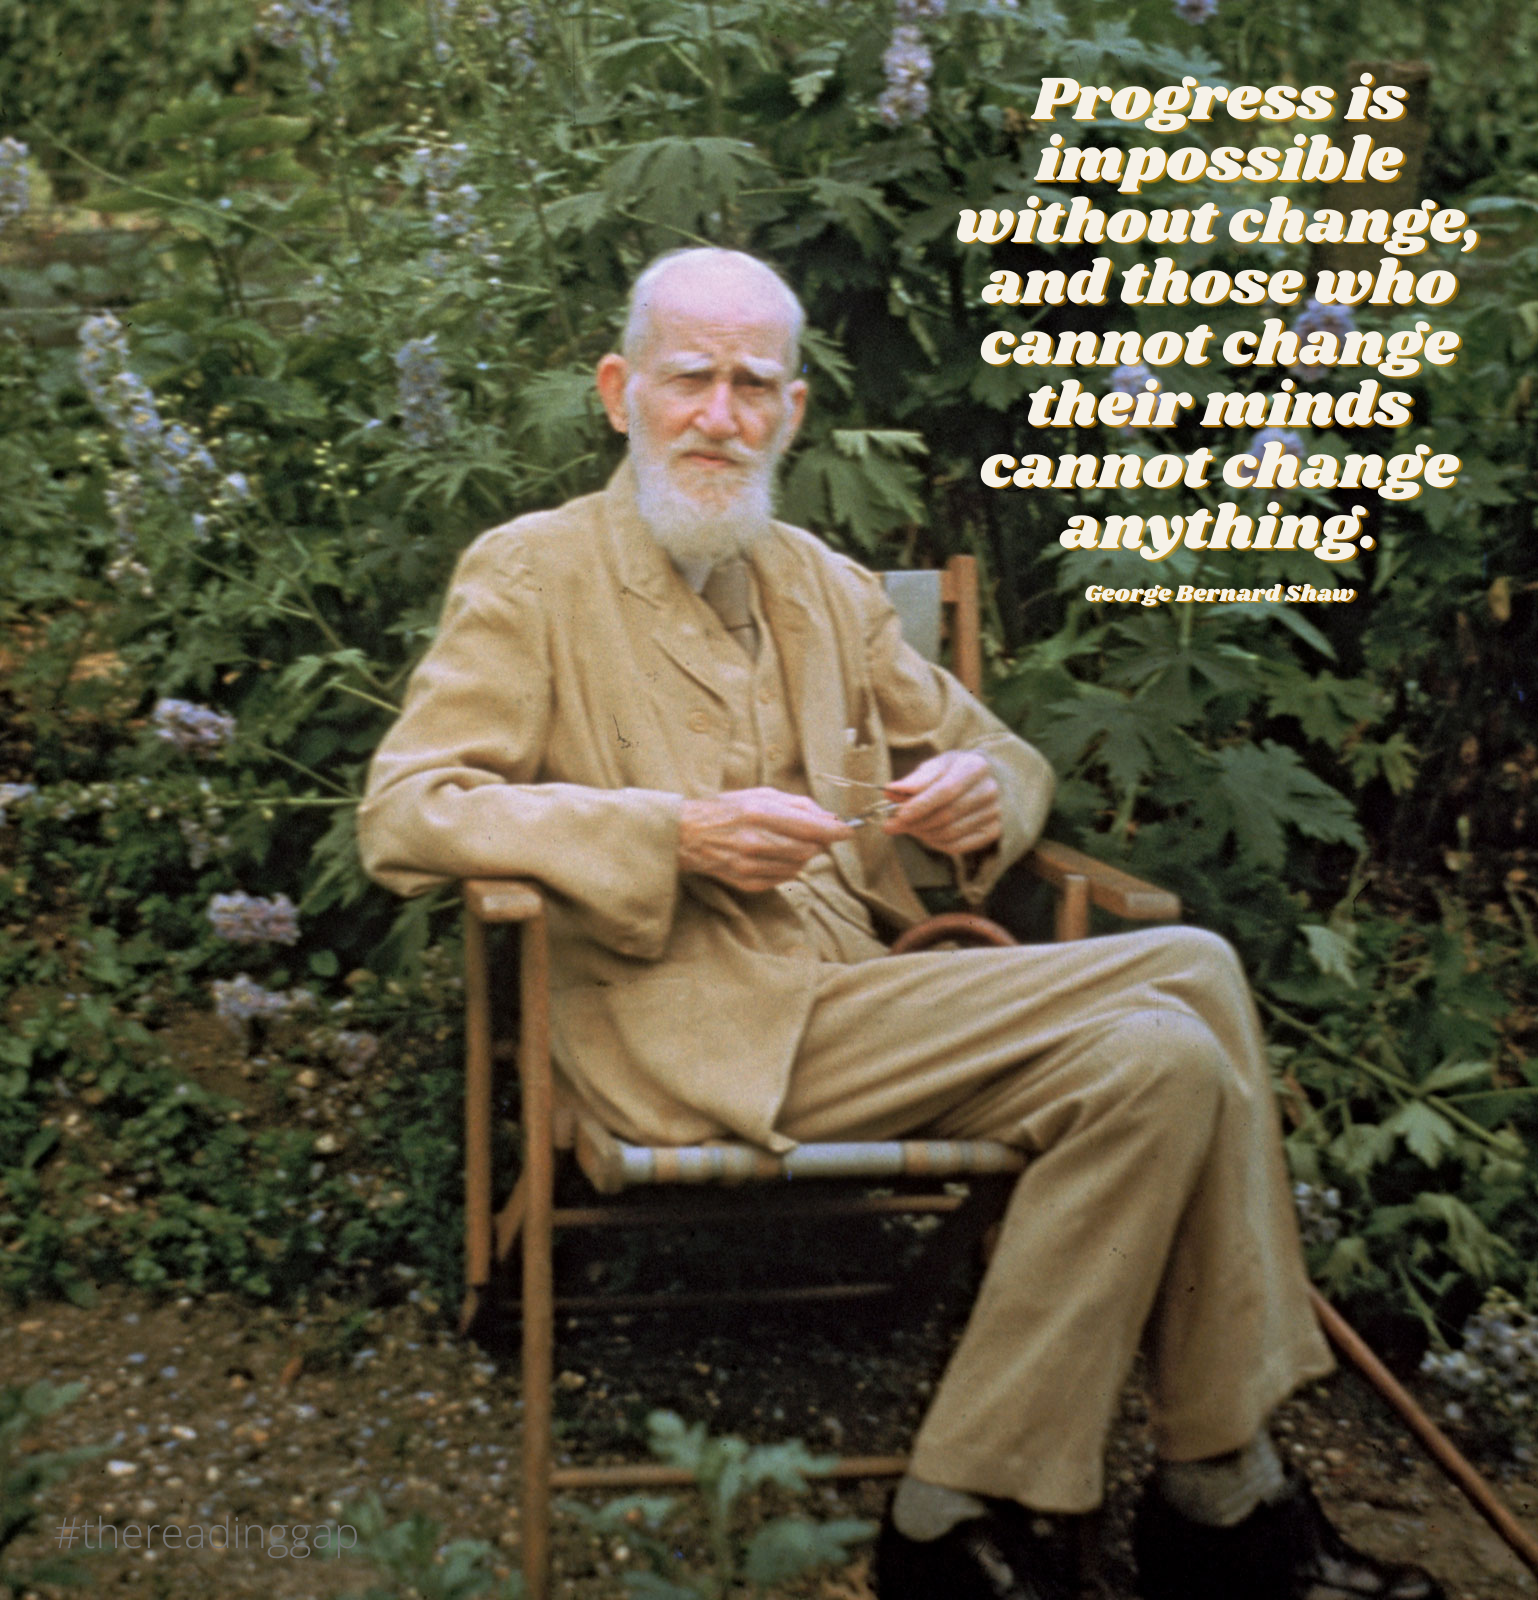 """Progress is impossible without change, and those who cannot change their minds cannot change anything."" – George Bernard Shaw [1538×1600]"